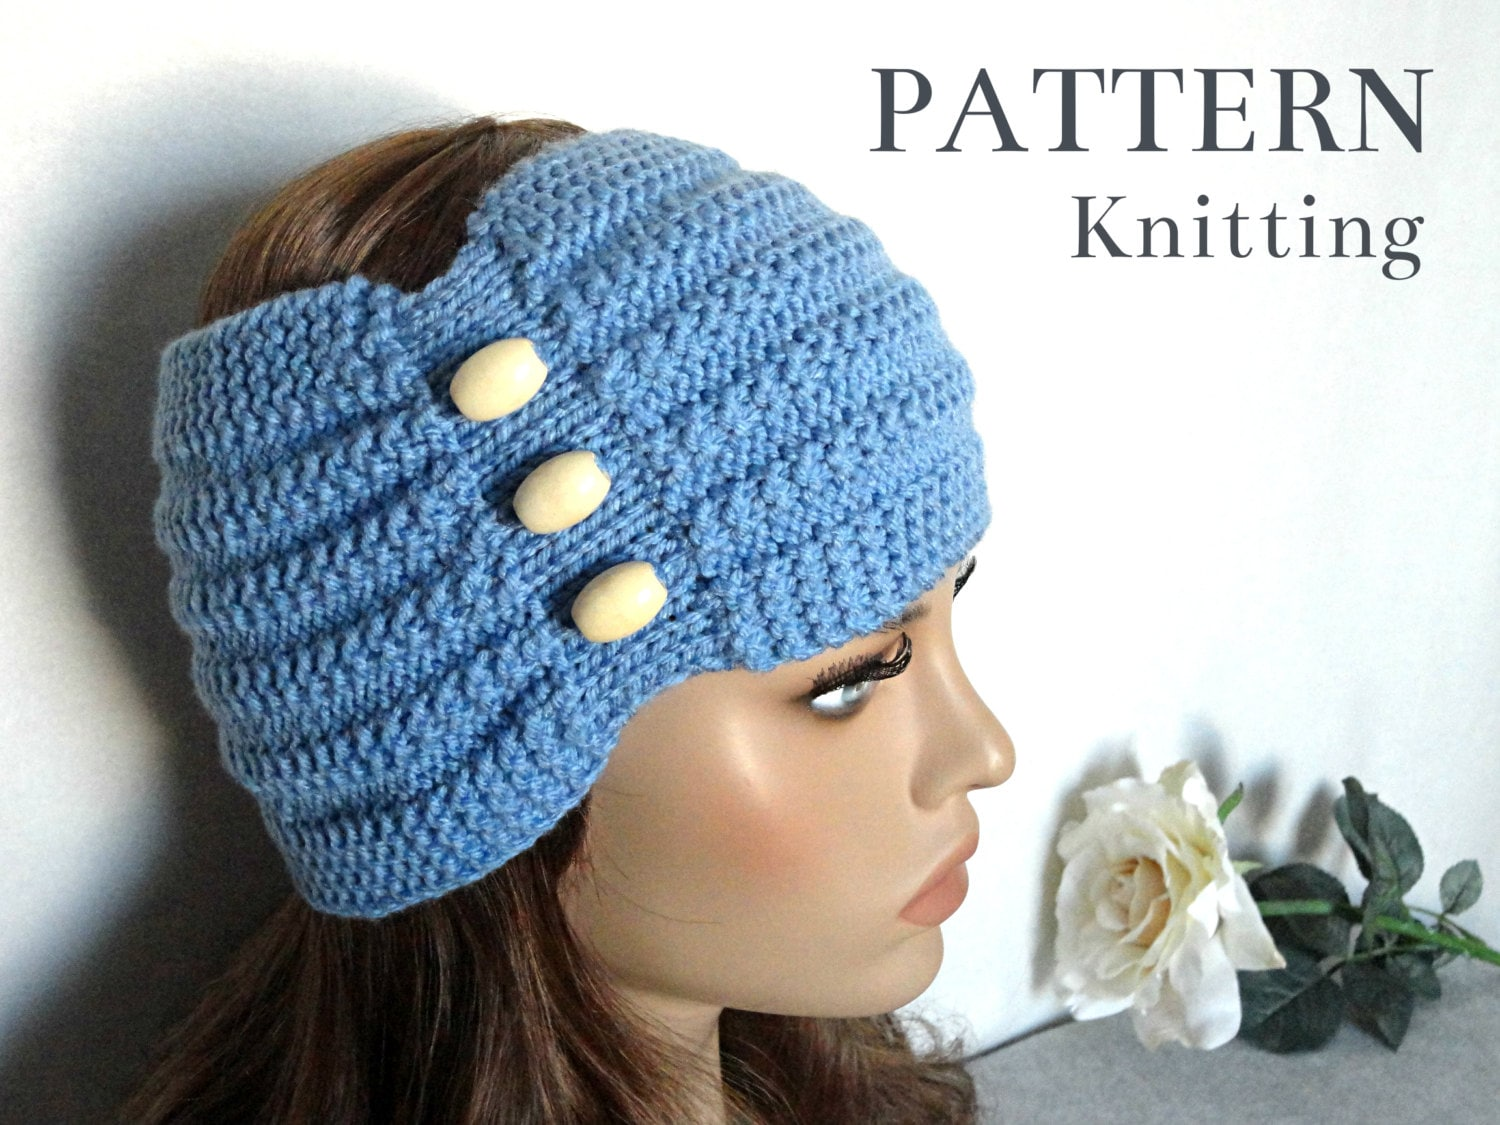 Knitting PATTERN Headband Womens Ear Warmer Adult Headband Knit ...